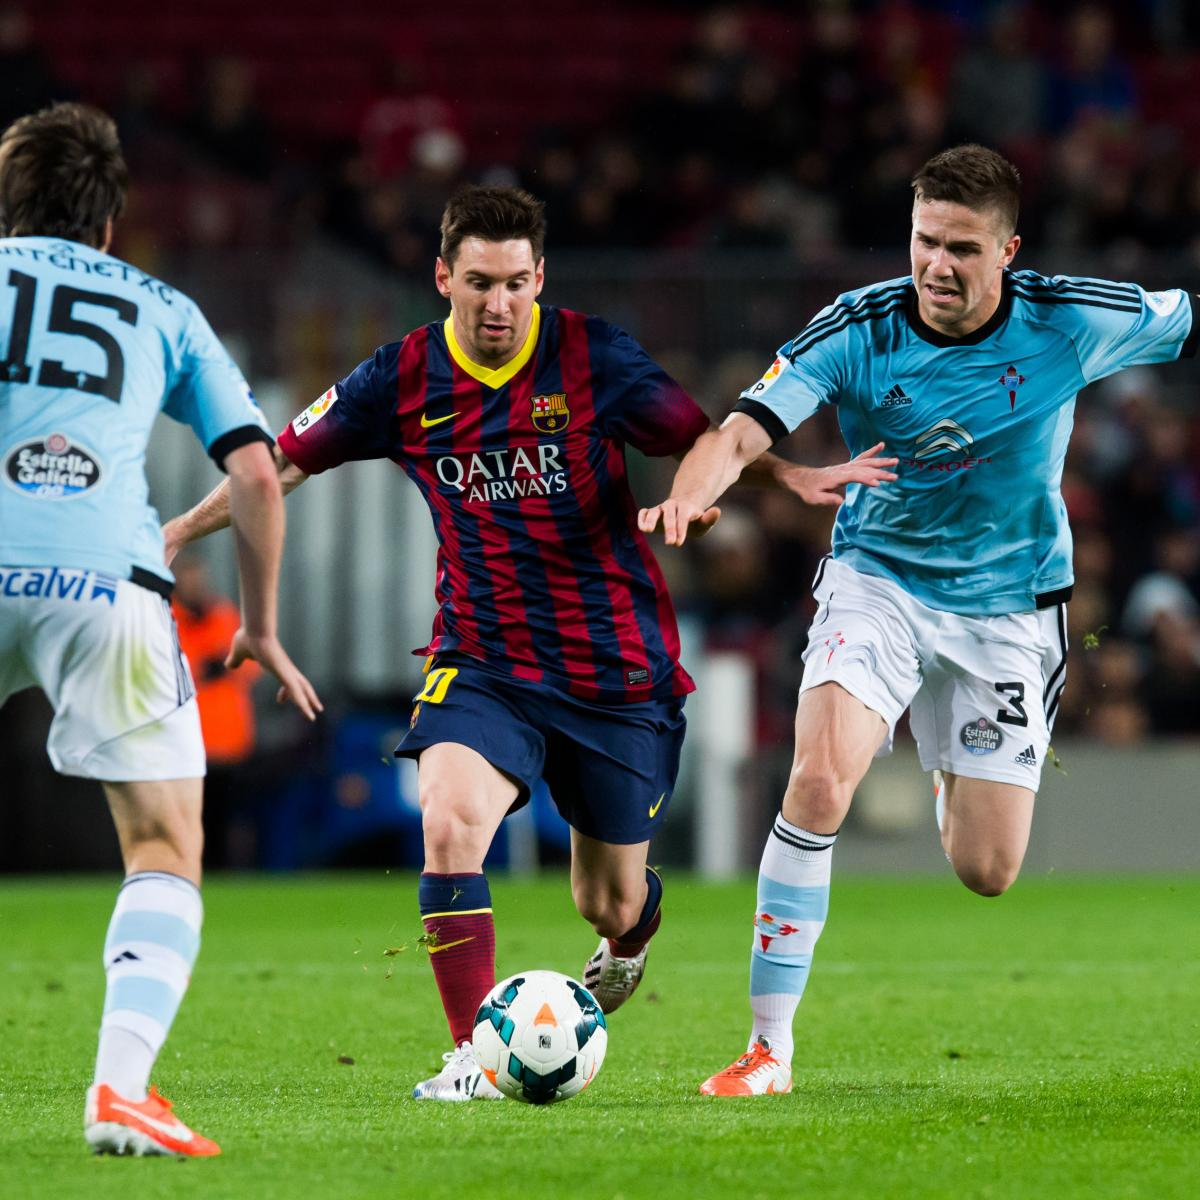 Barcelona Vs. Celta Vigo: Key Issues And Decisions That